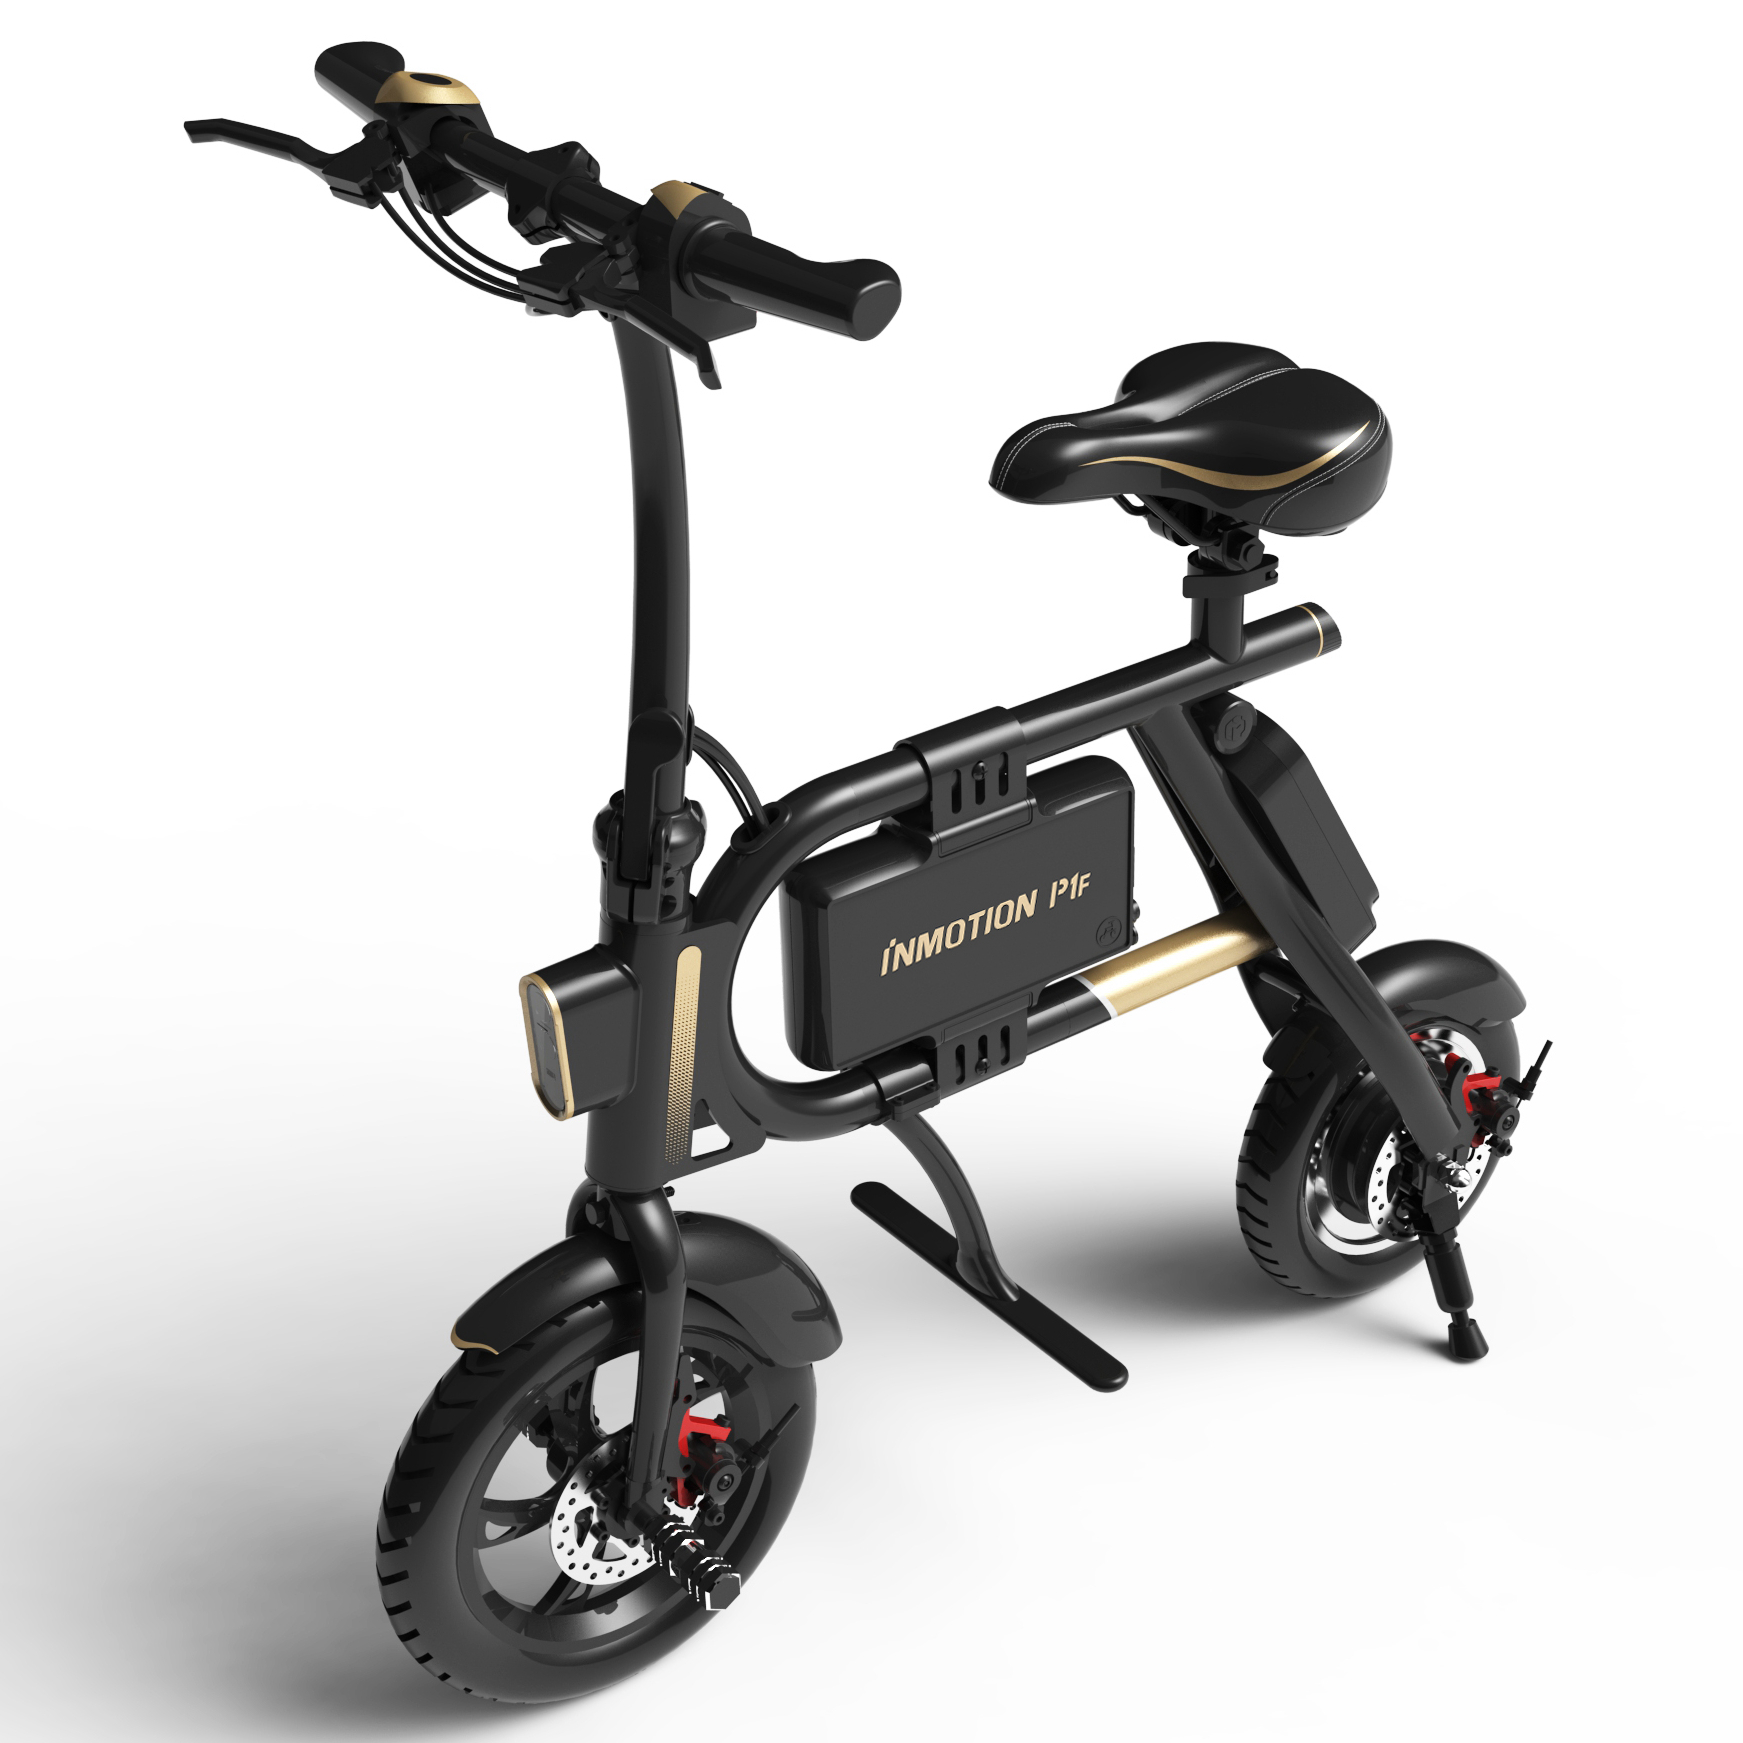 Mini Lightweight Foldable Electric Bike with Dual Disc Brakes